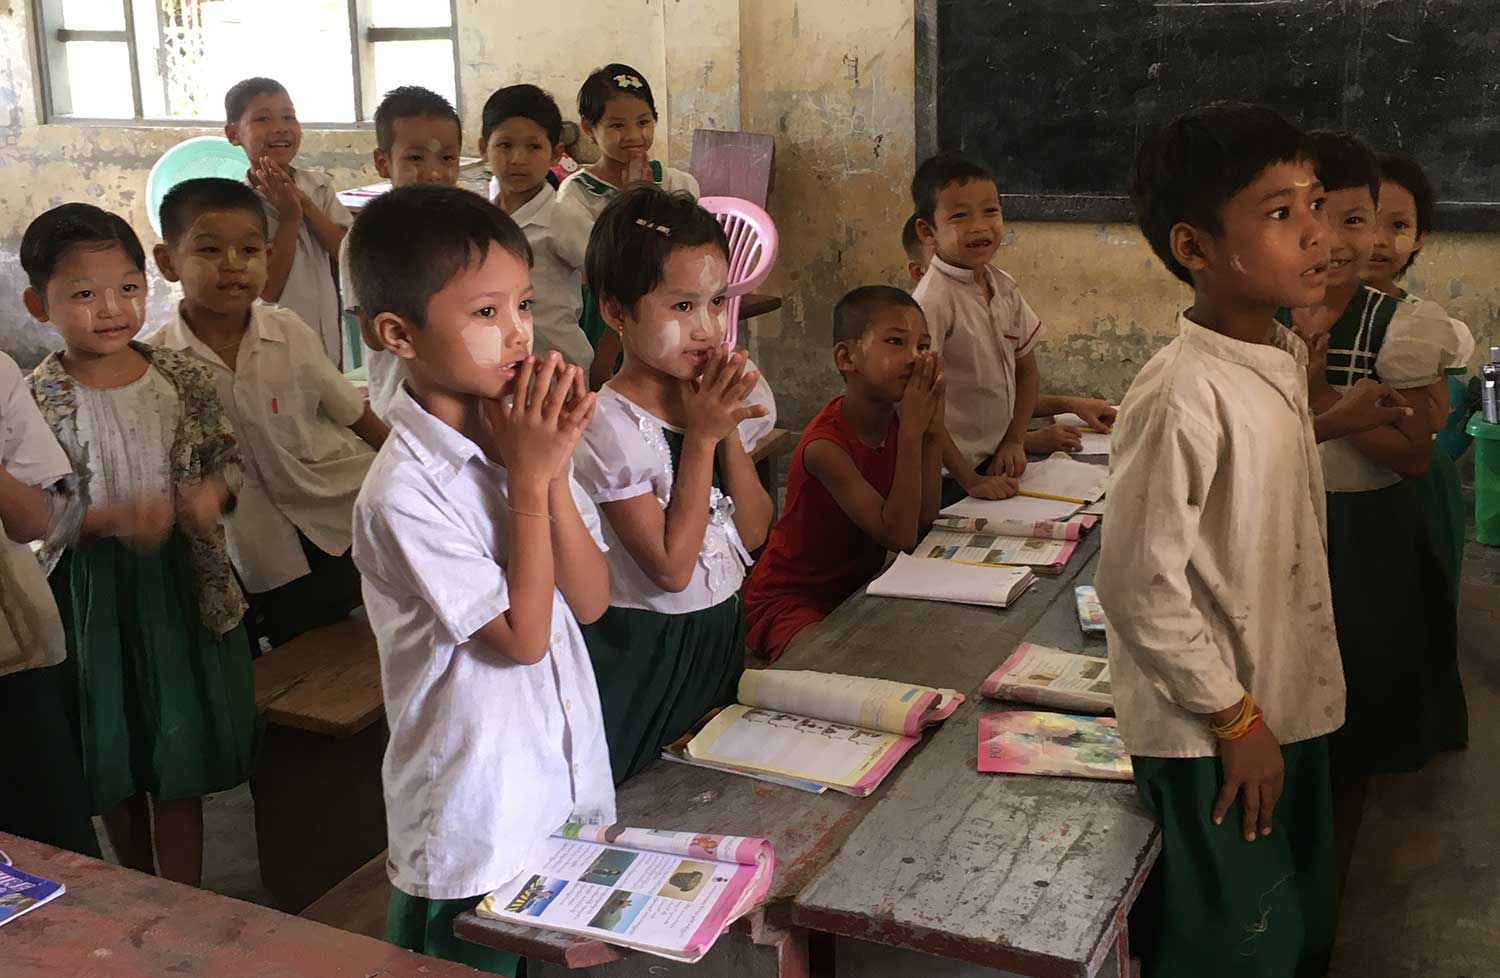 Families have more income and children go to school as a result of Five Talents' ministry.